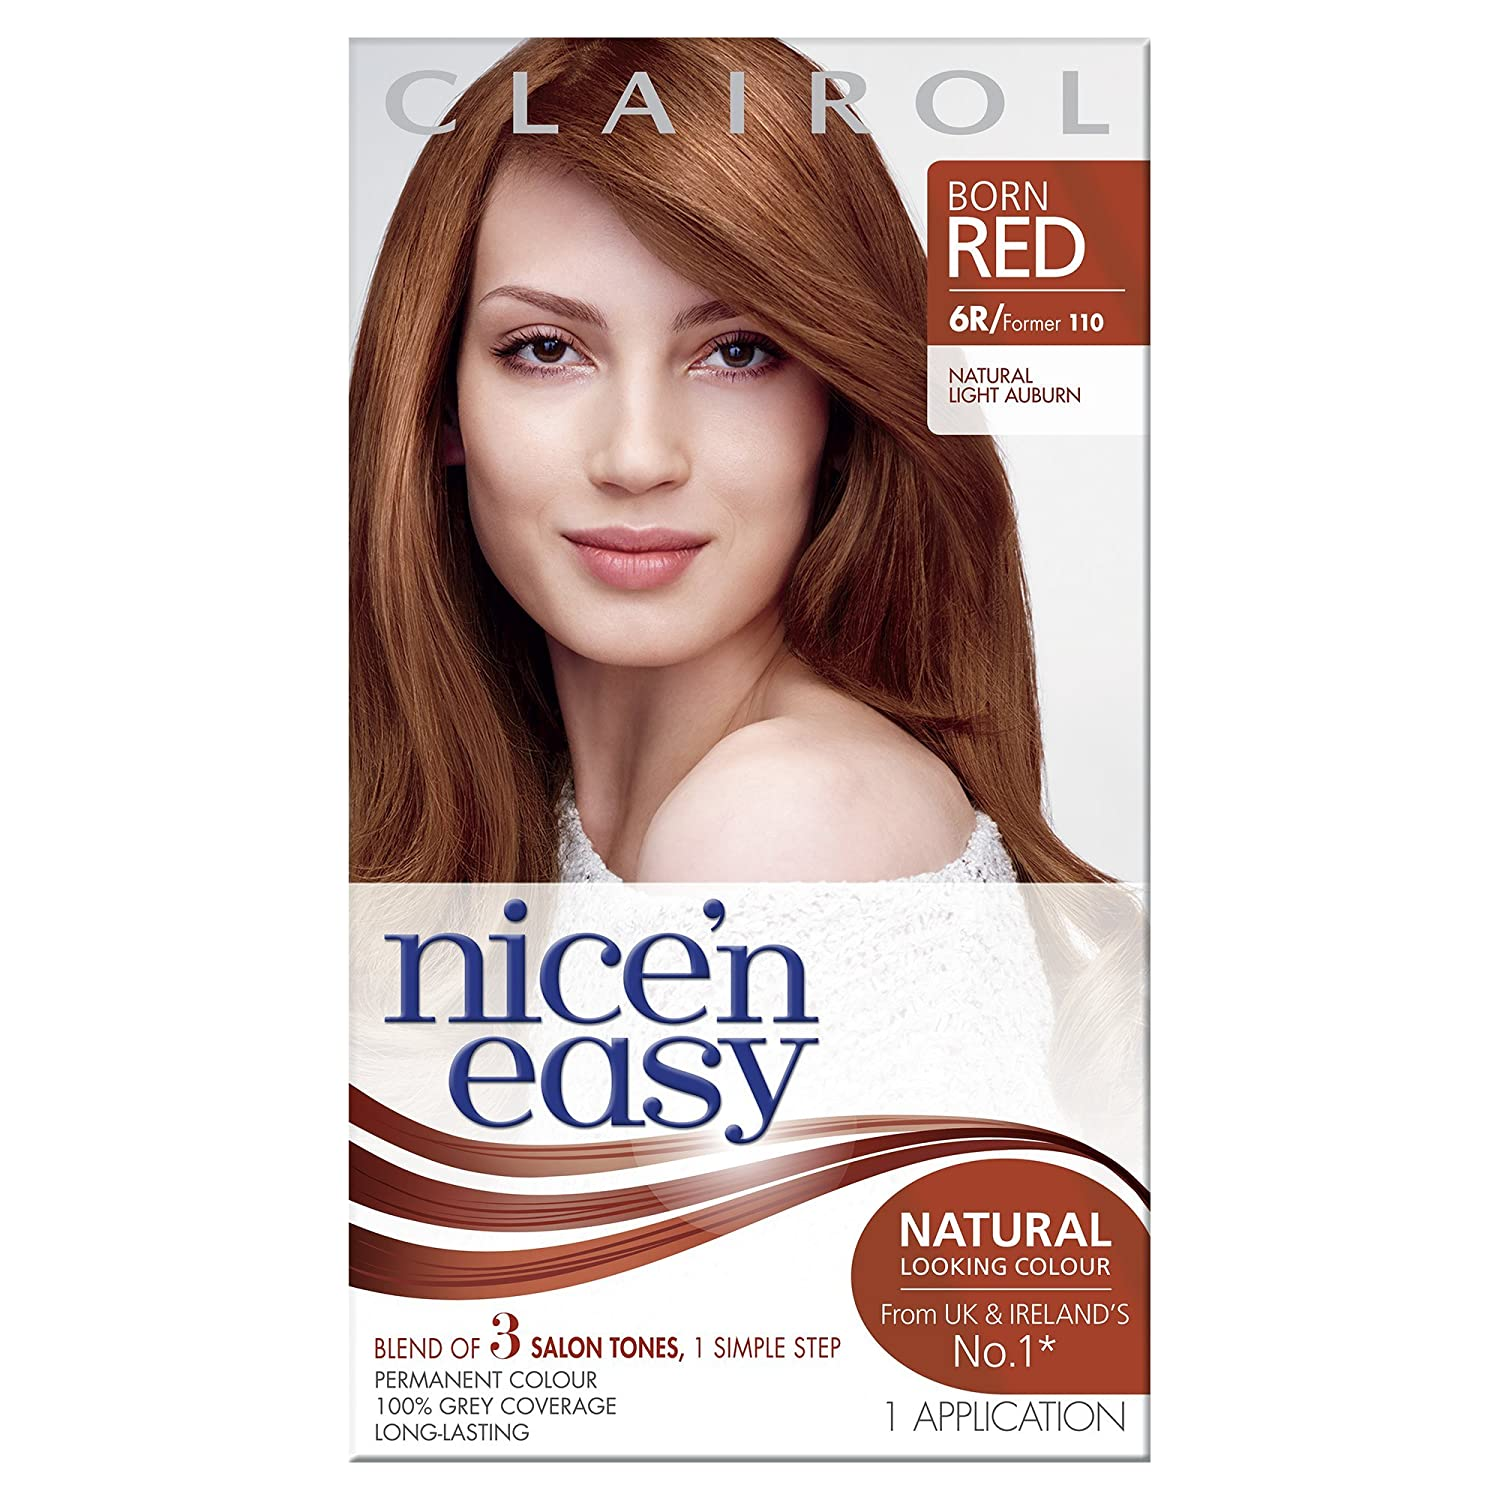 Clairol Nicen Easy Permanent Hair Dye 1106r Natural Light Auburn